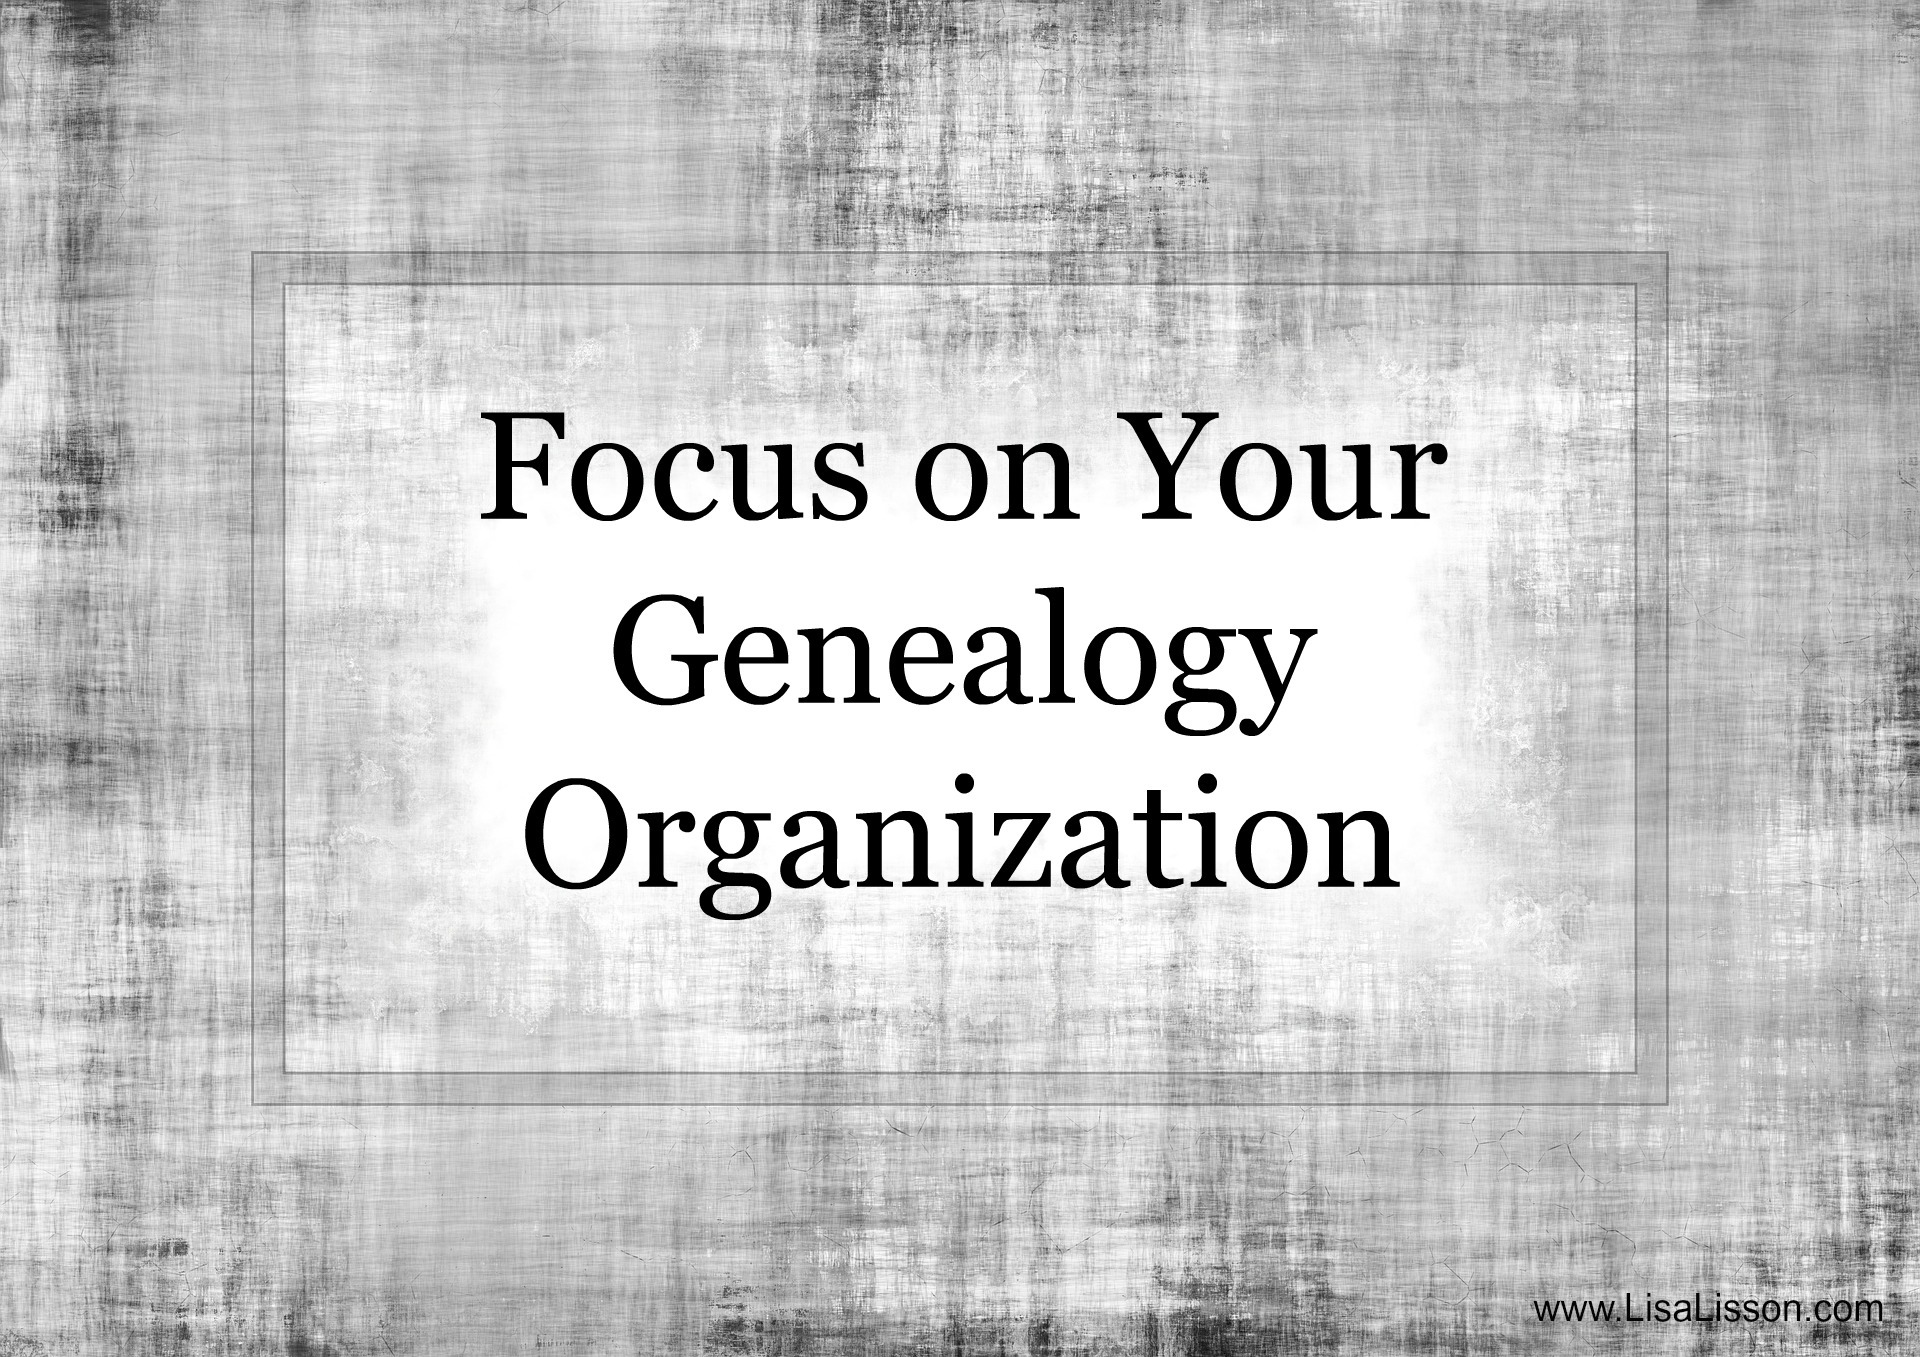 Focus on Your Genealogy Organization